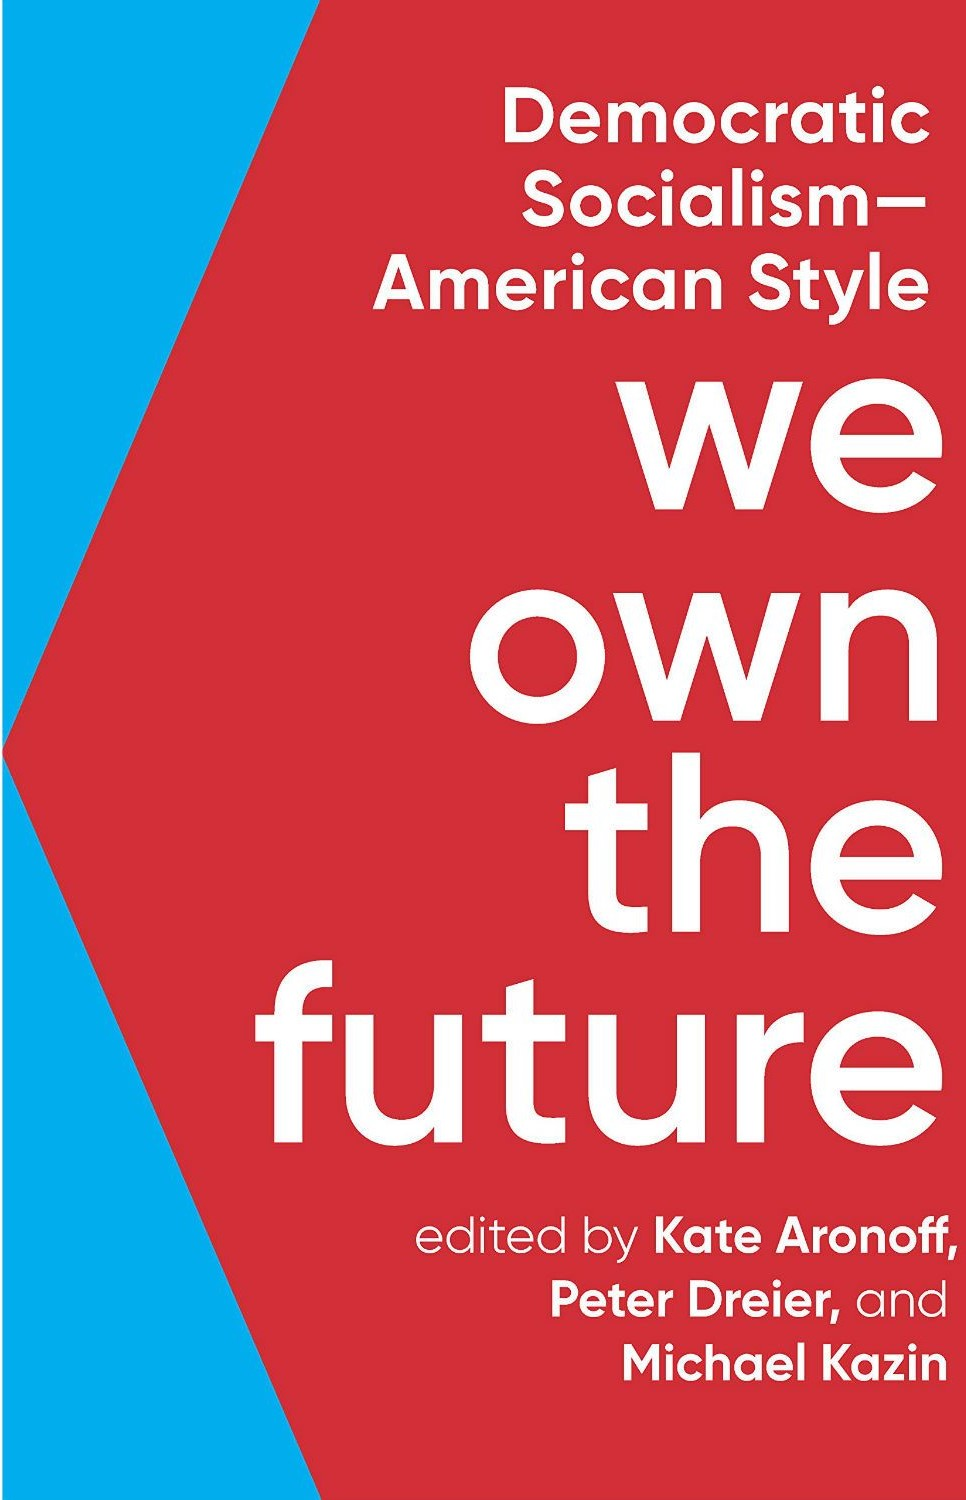 We Own the Future: Democratic Socialism—American Style